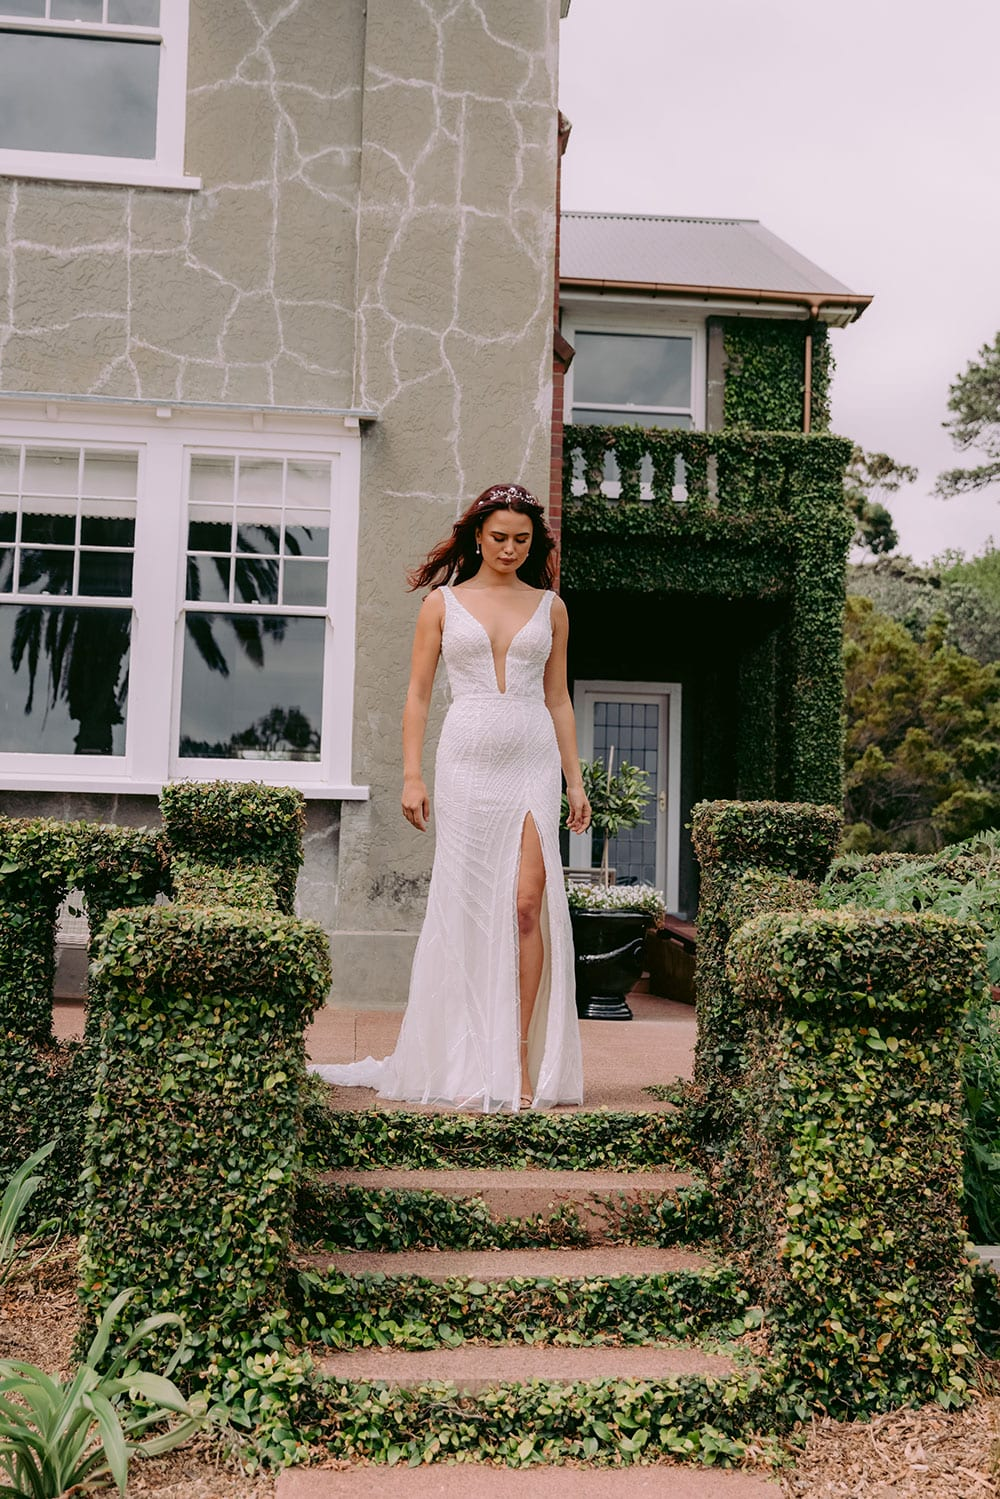 Elle Wedding gown from Vinka Design - Wedding dress with illusion neckline and deep plunge in the front with low back. Stunning beaded embroidery over a stretch base that sculpts and flatters the figure and falls into a beautiful flared train. Model wearing gown in beautiful gardens.